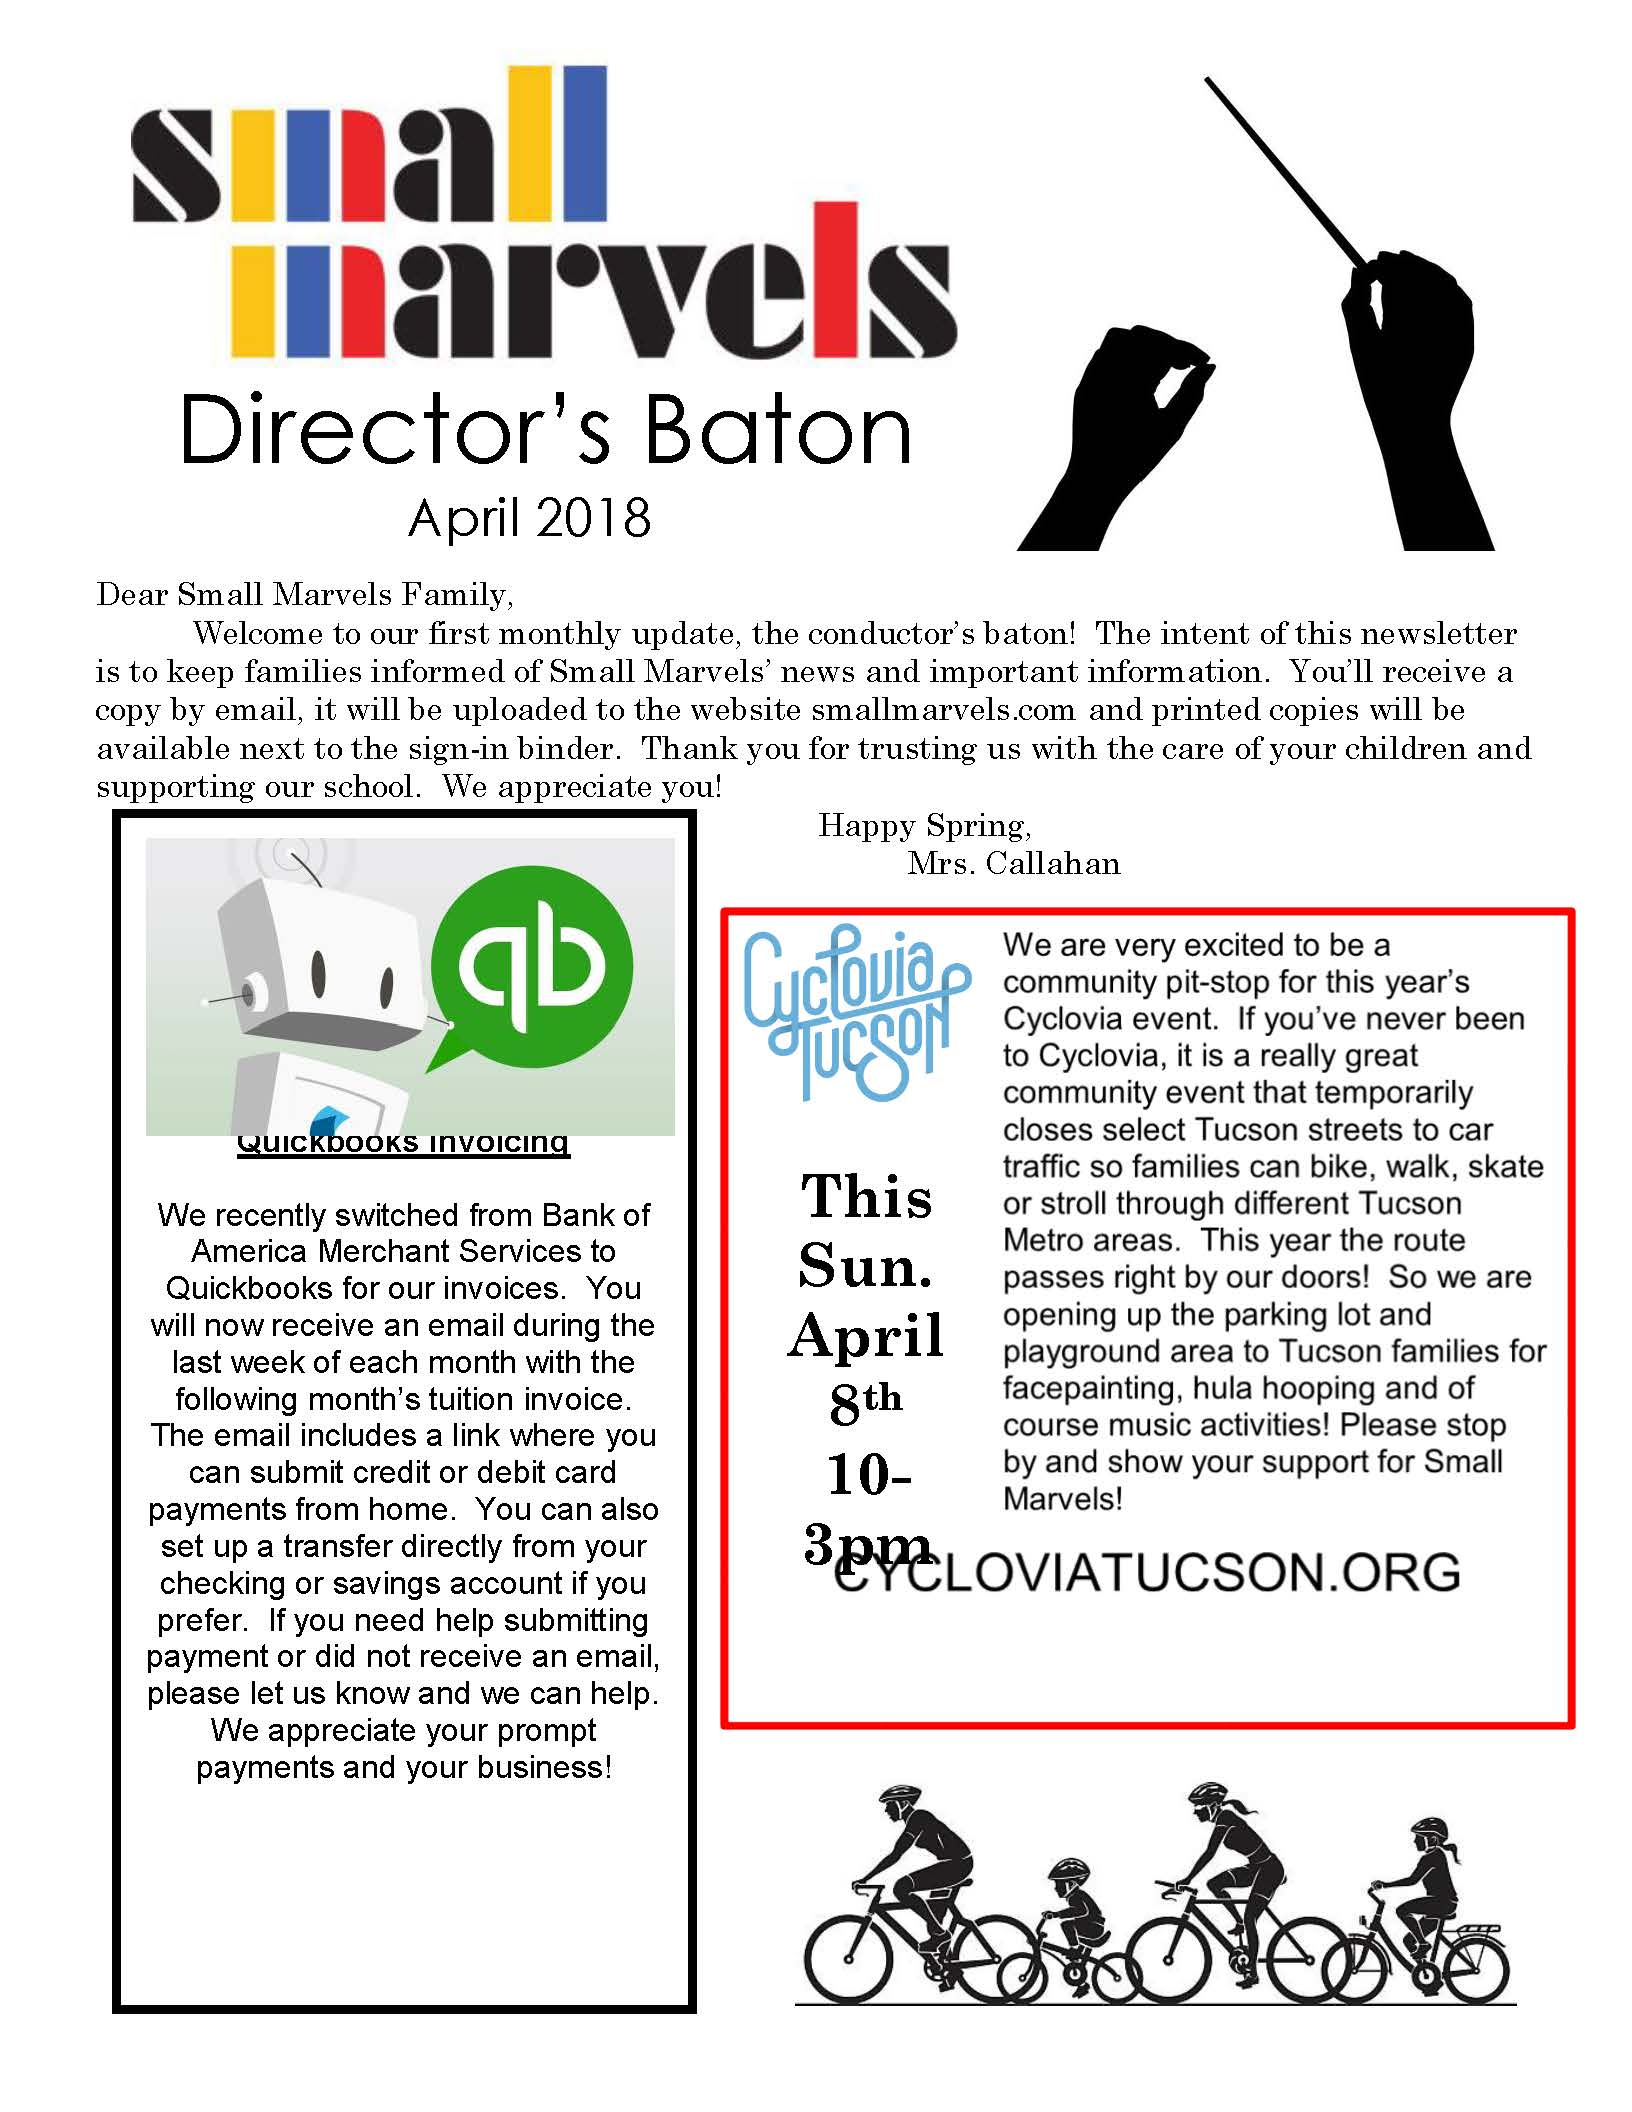 Conductor's Baton April 2018_Page_1.jpg